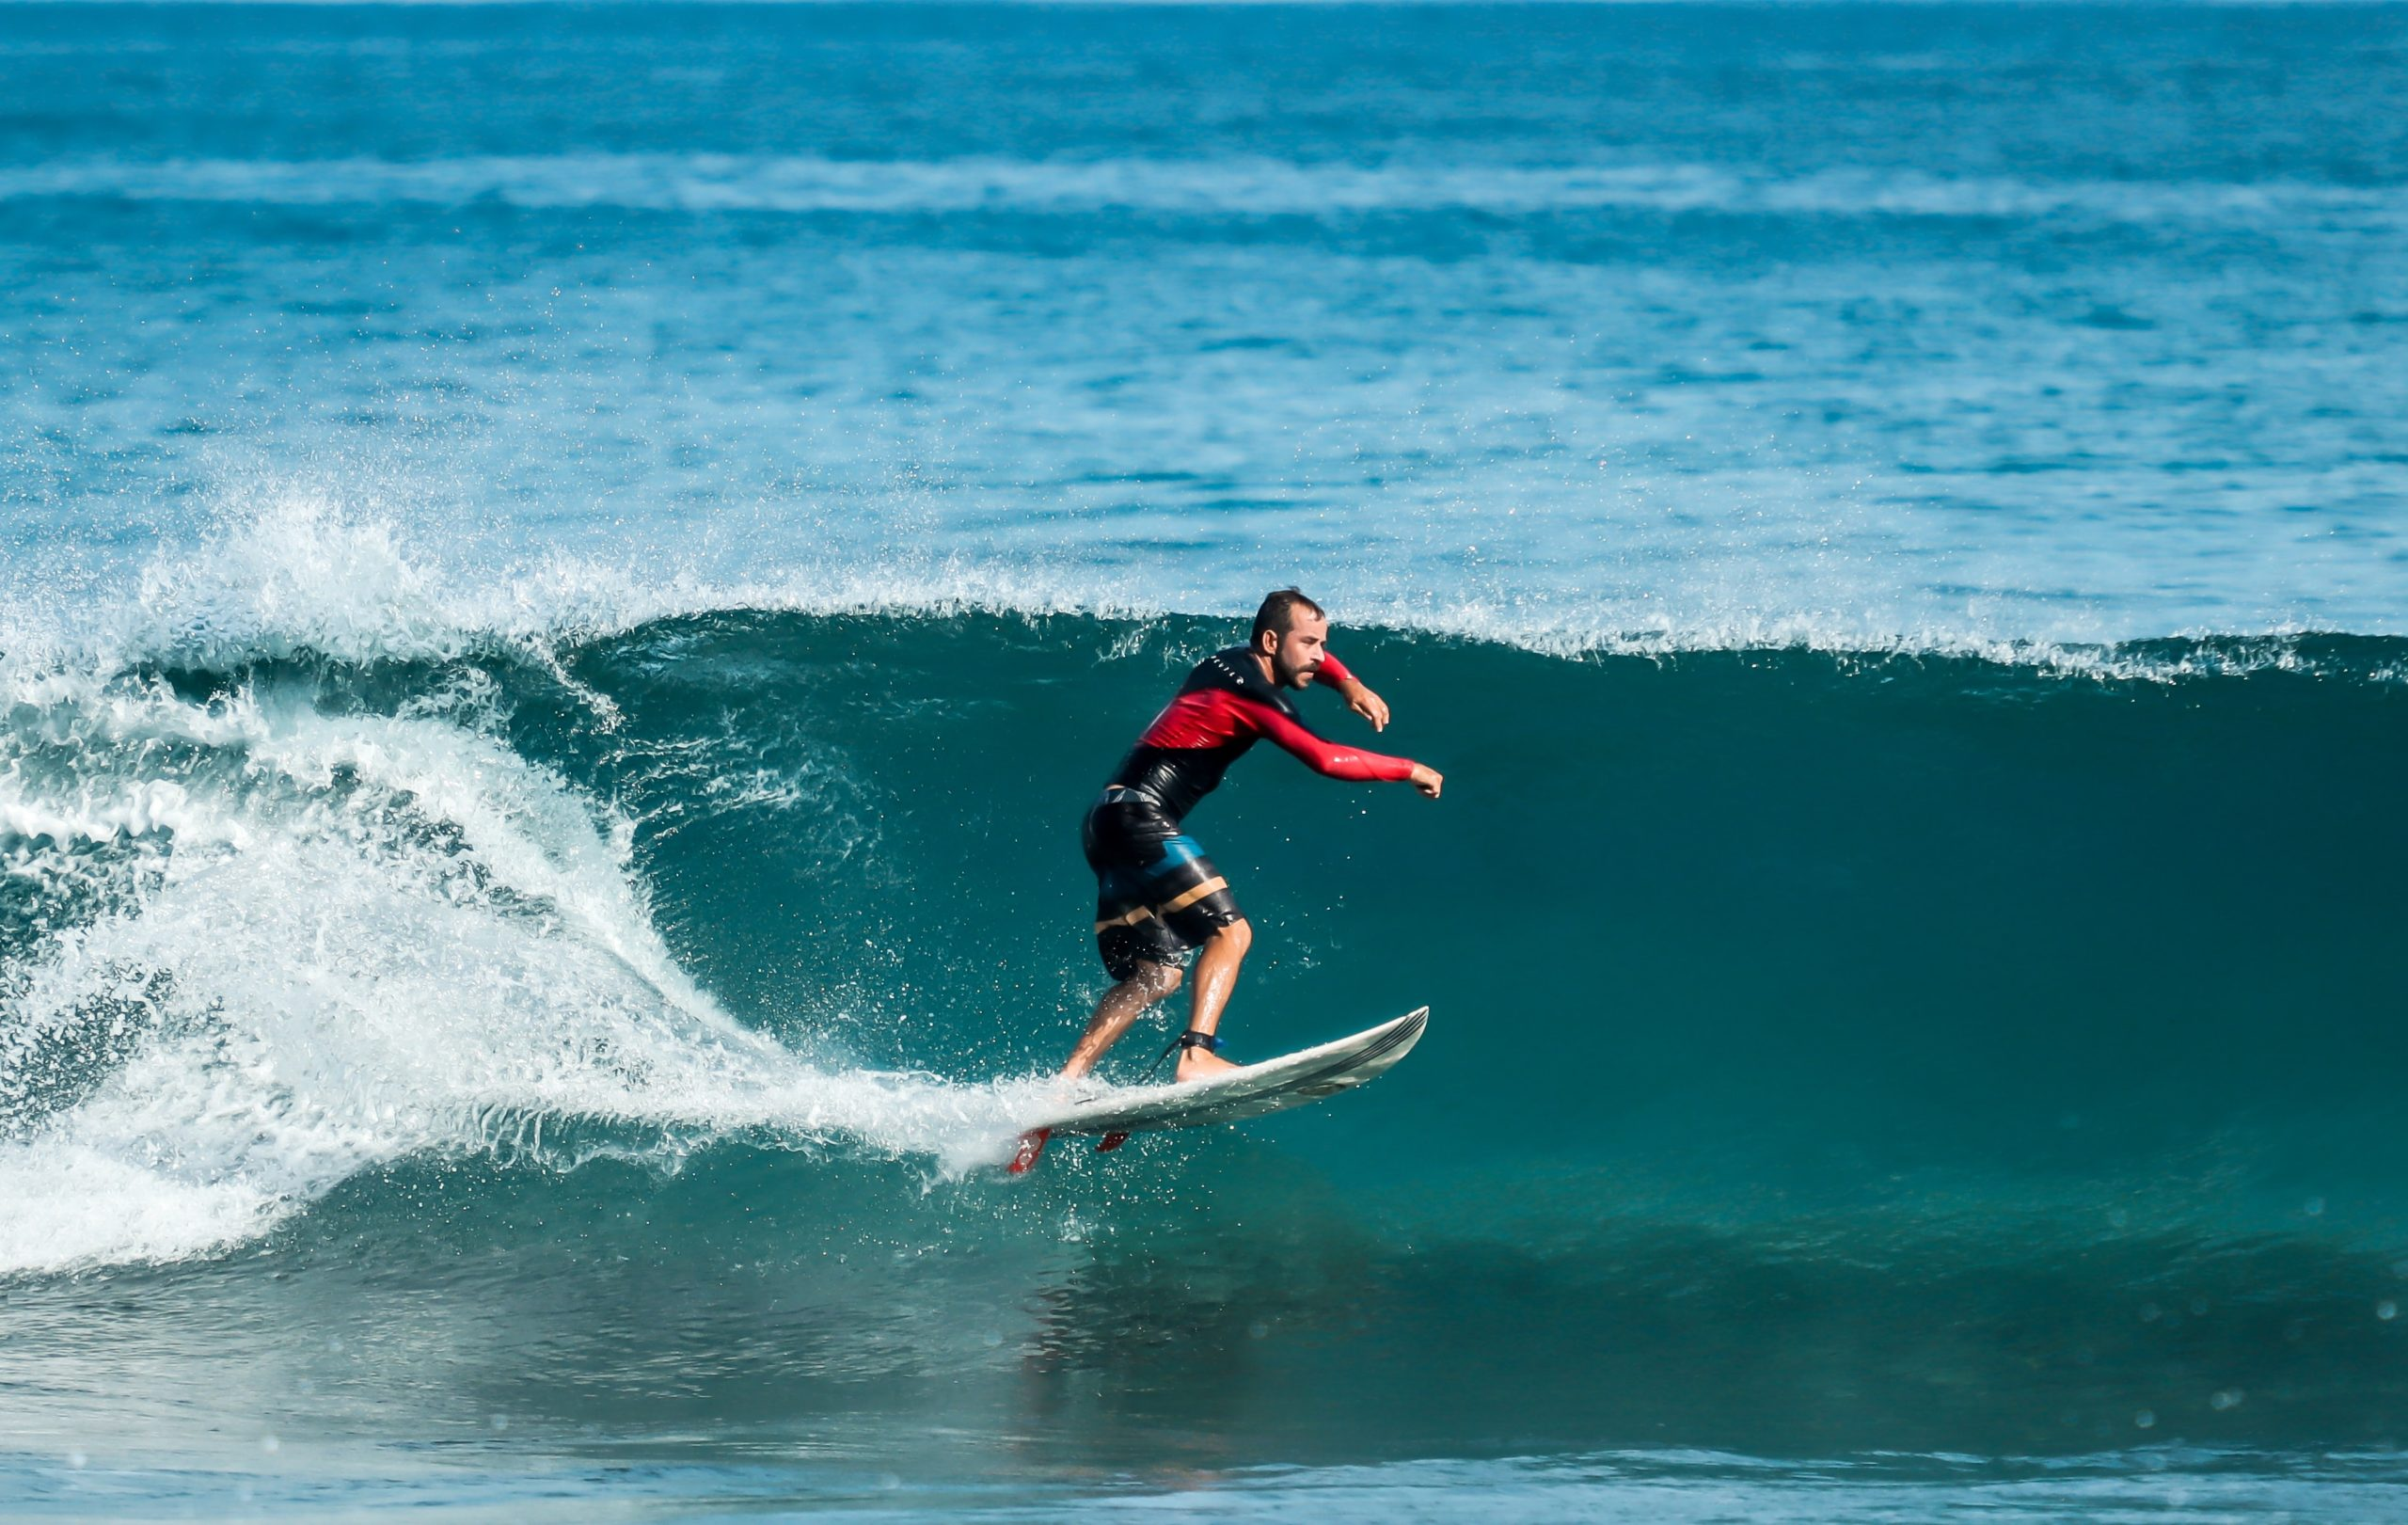 The Most Common Surfing Tactics For Pro Surfers